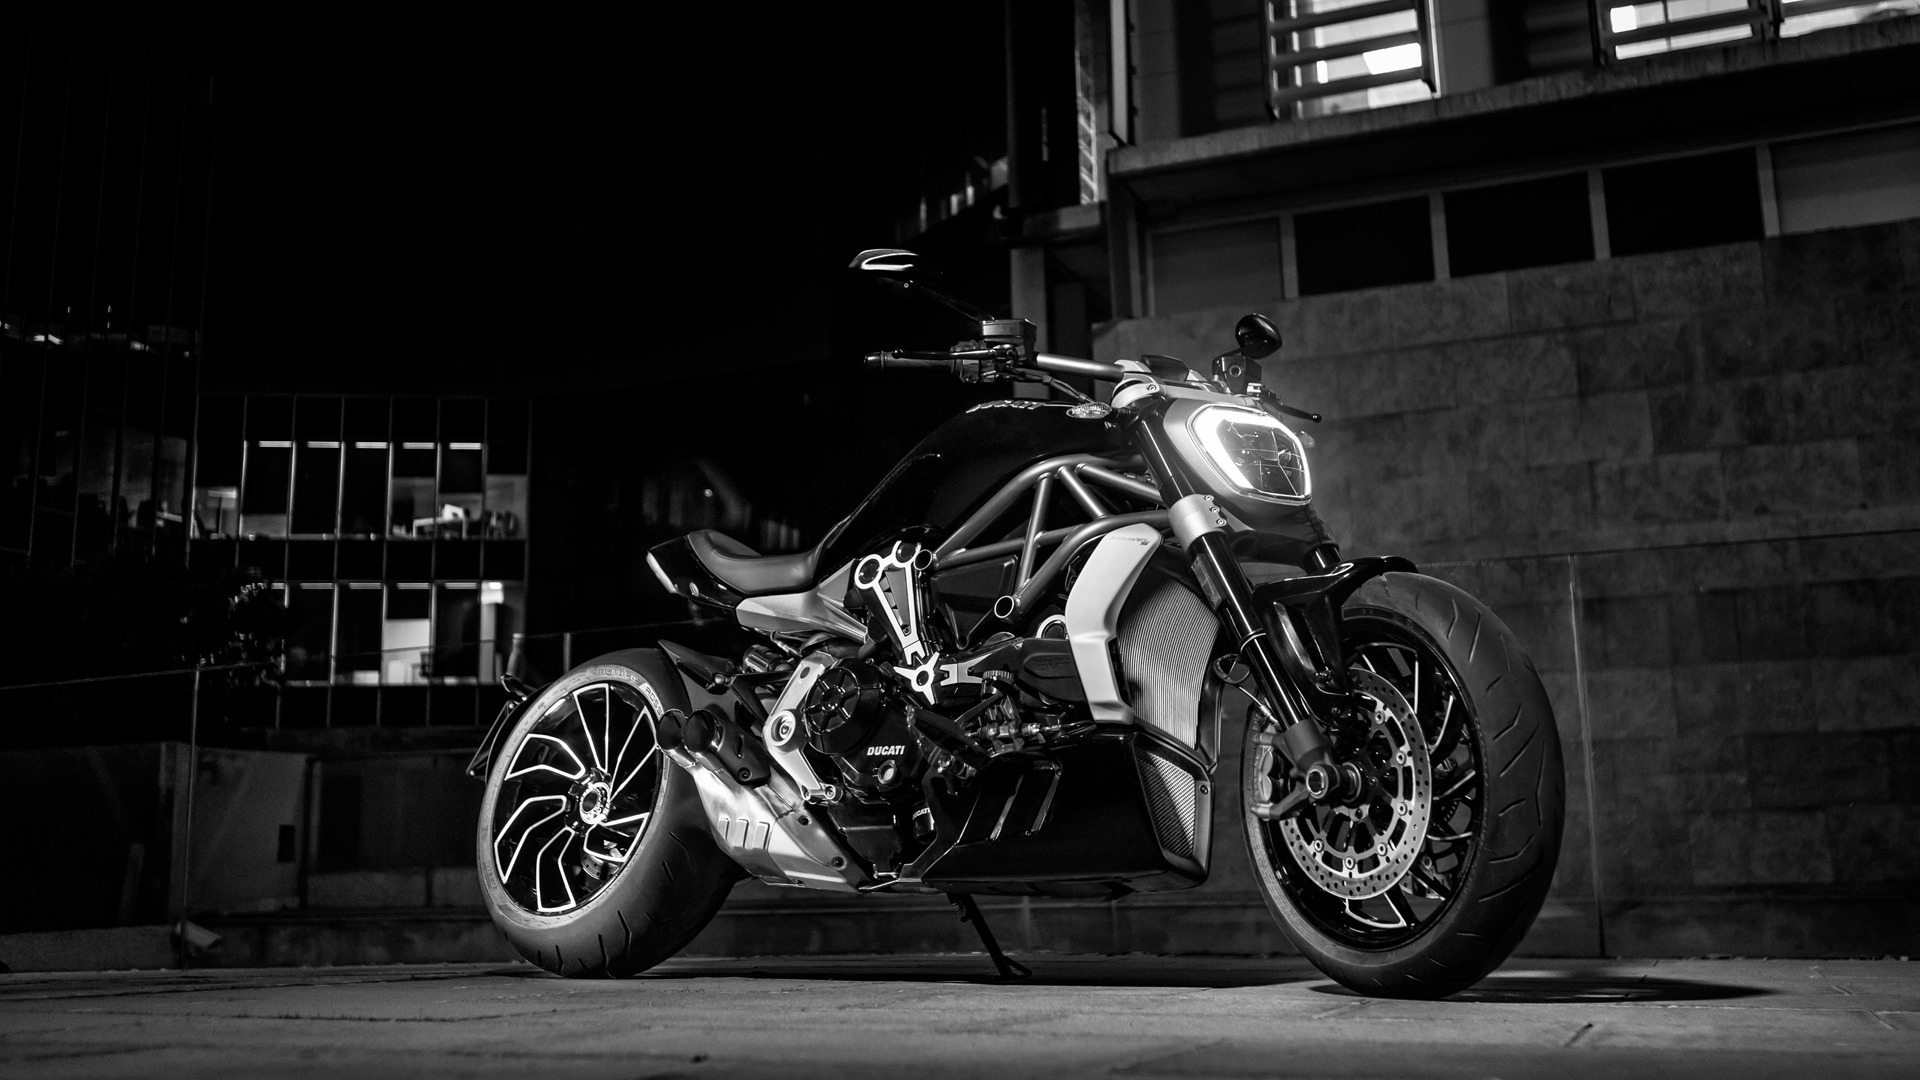 XDiavel-S-MY18-Dark-17-Slider-gallery-1920x1080